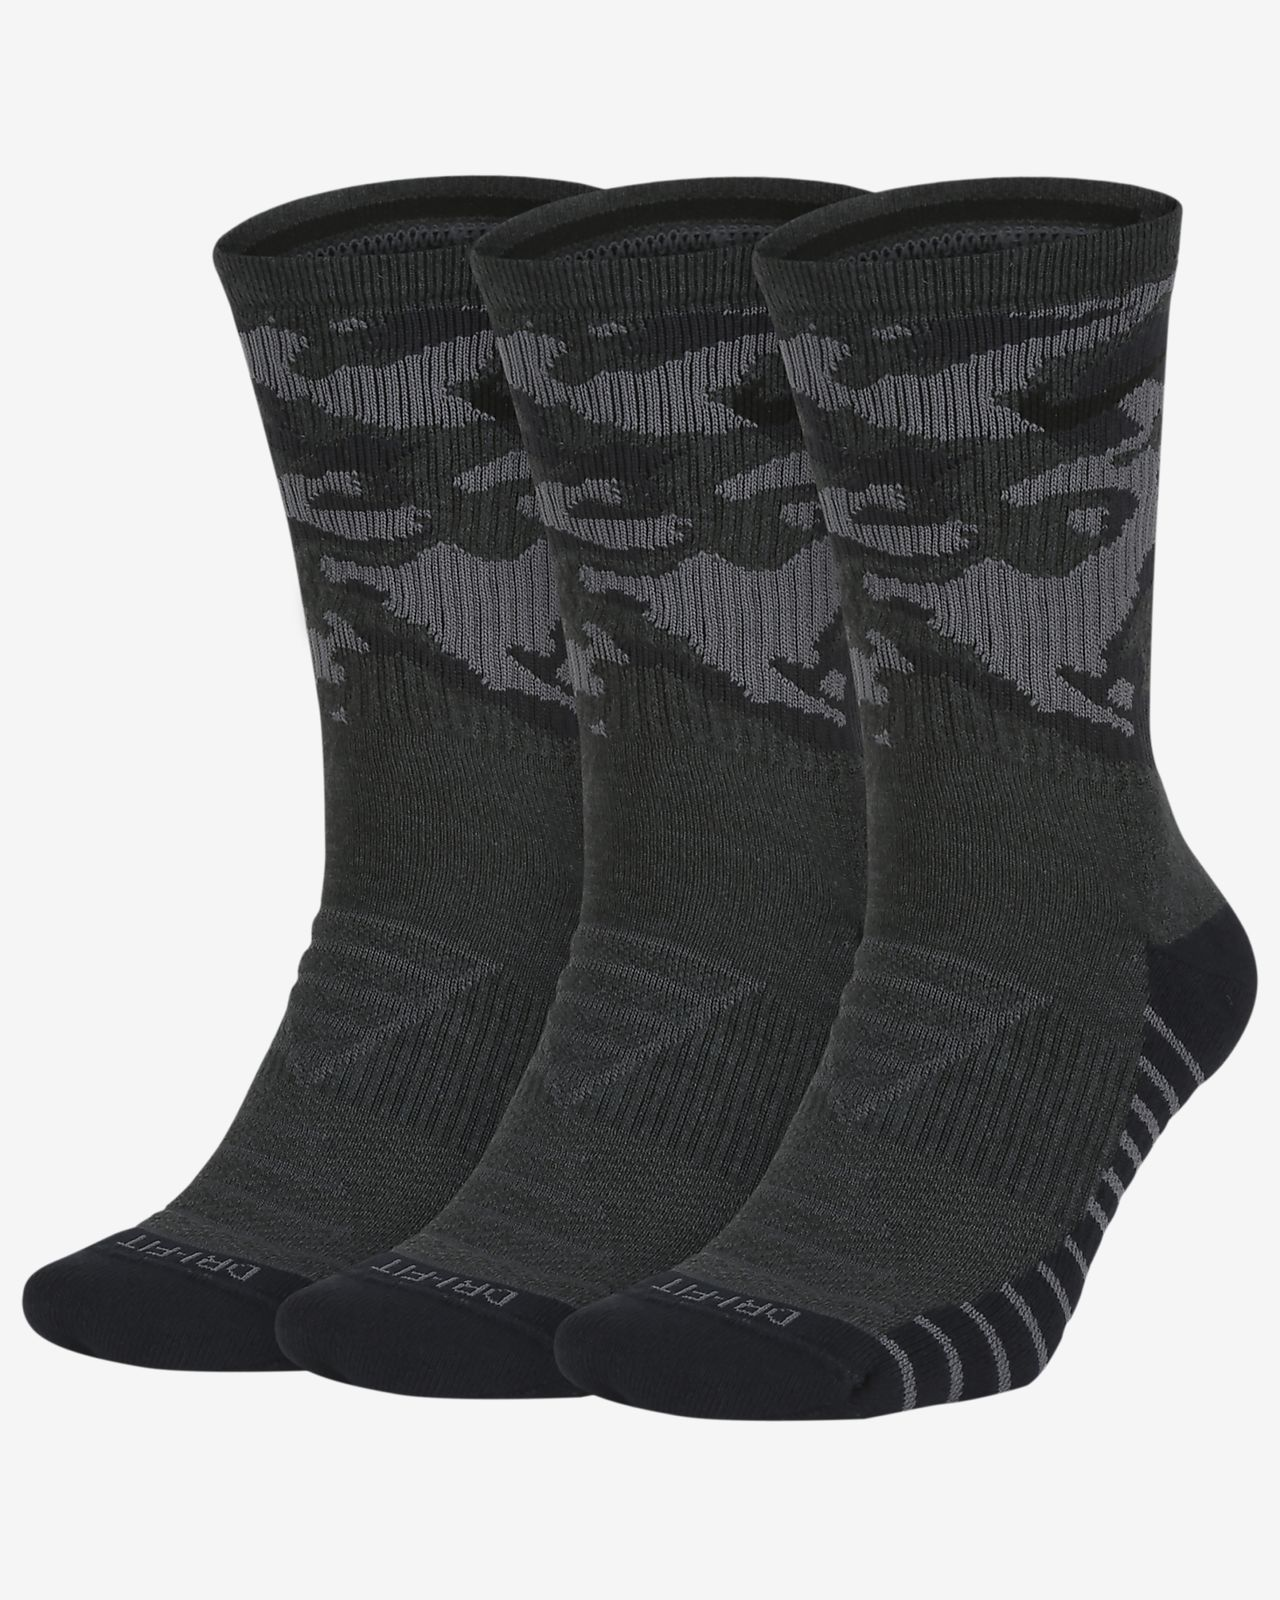 Nike Everyday Max Cushion Camo Training Crew Socks (3 Pairs). Nike ... 29260d6a1